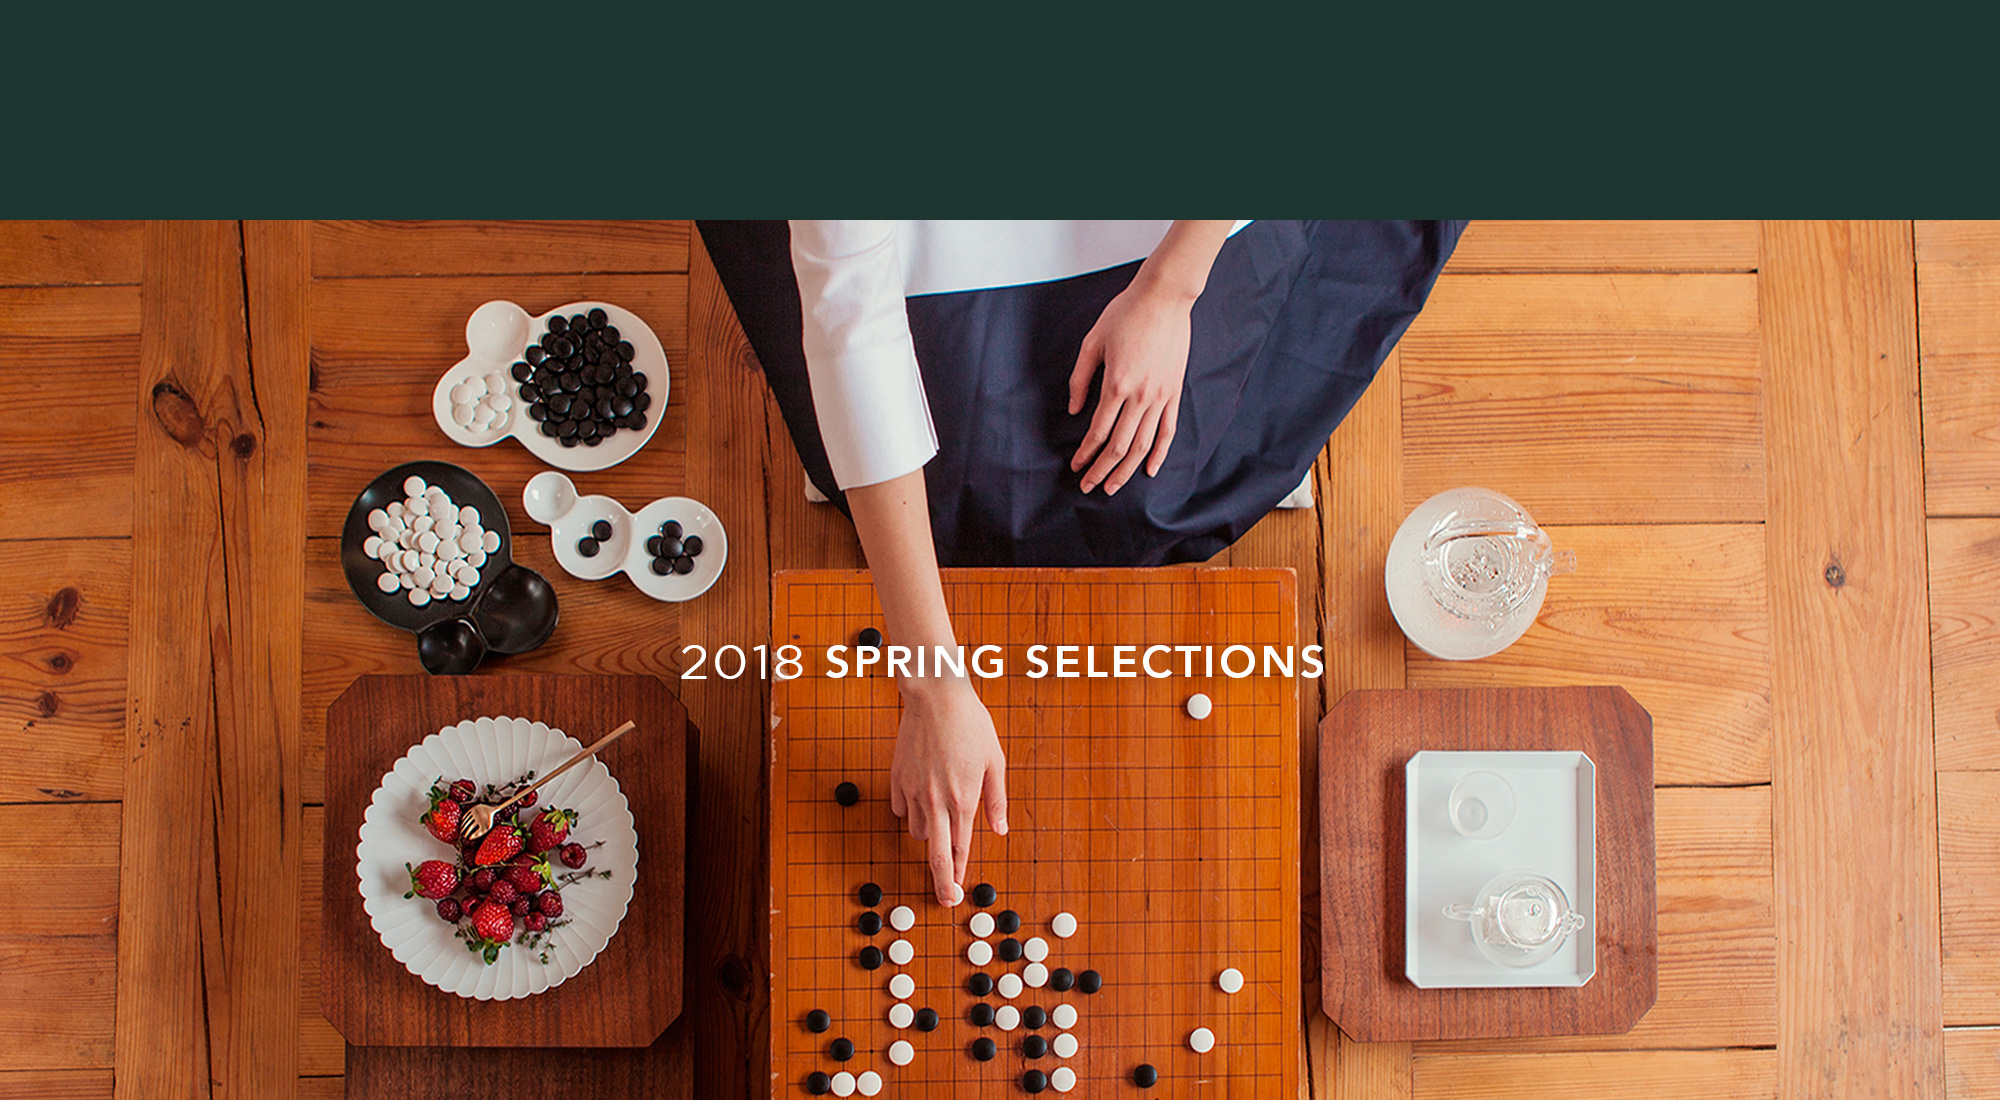 2018 spring selections